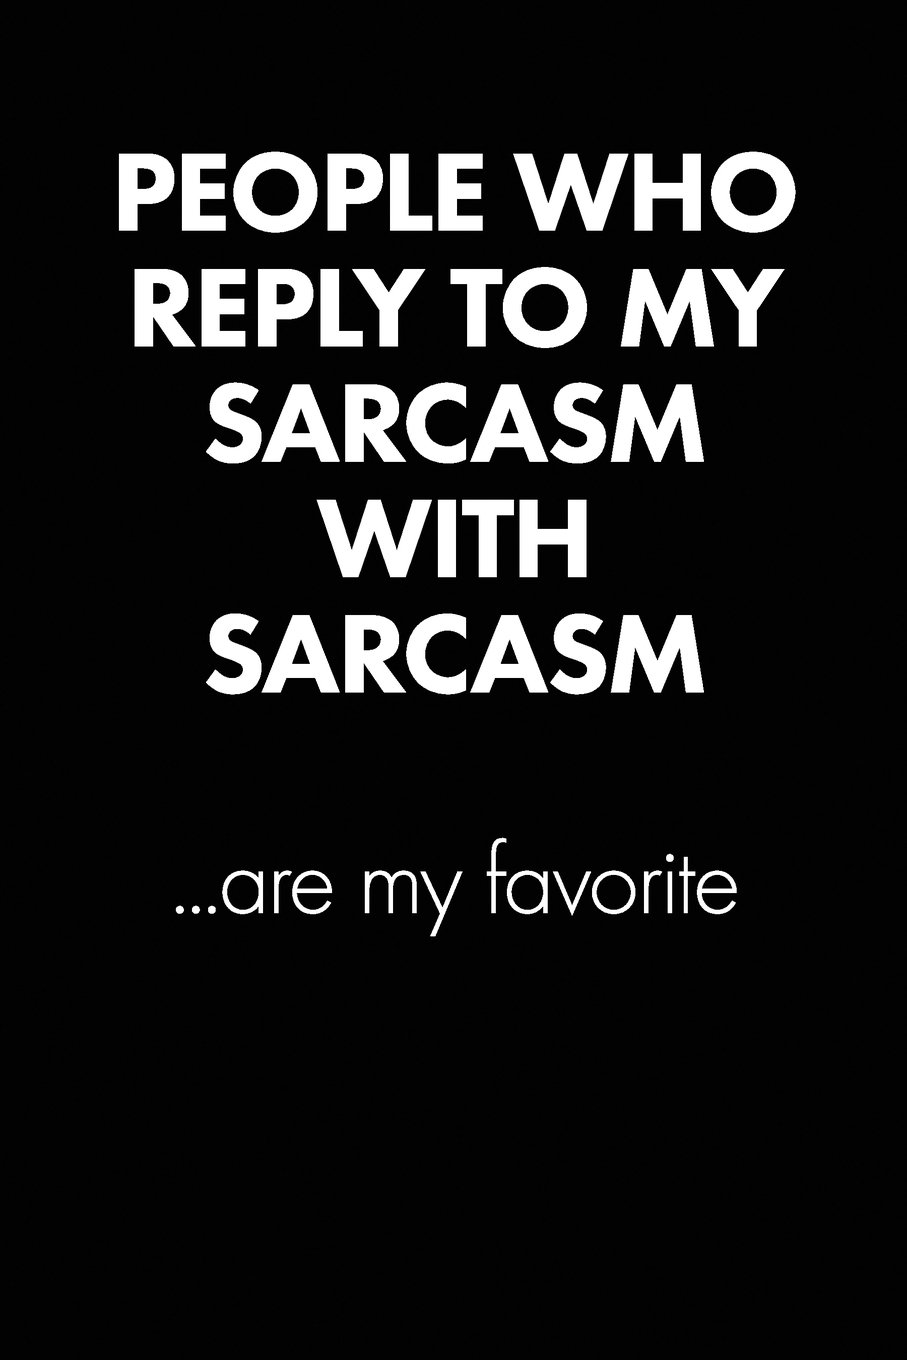 People Who Reply To My Sarcasm Sarcastic Quote Daily Journal Funny Gift 100 Page College Ruled Daily Journal Notebook 6 X 9 15 24 X 22 86 Gift Sarcasm United Sarcasm Industries